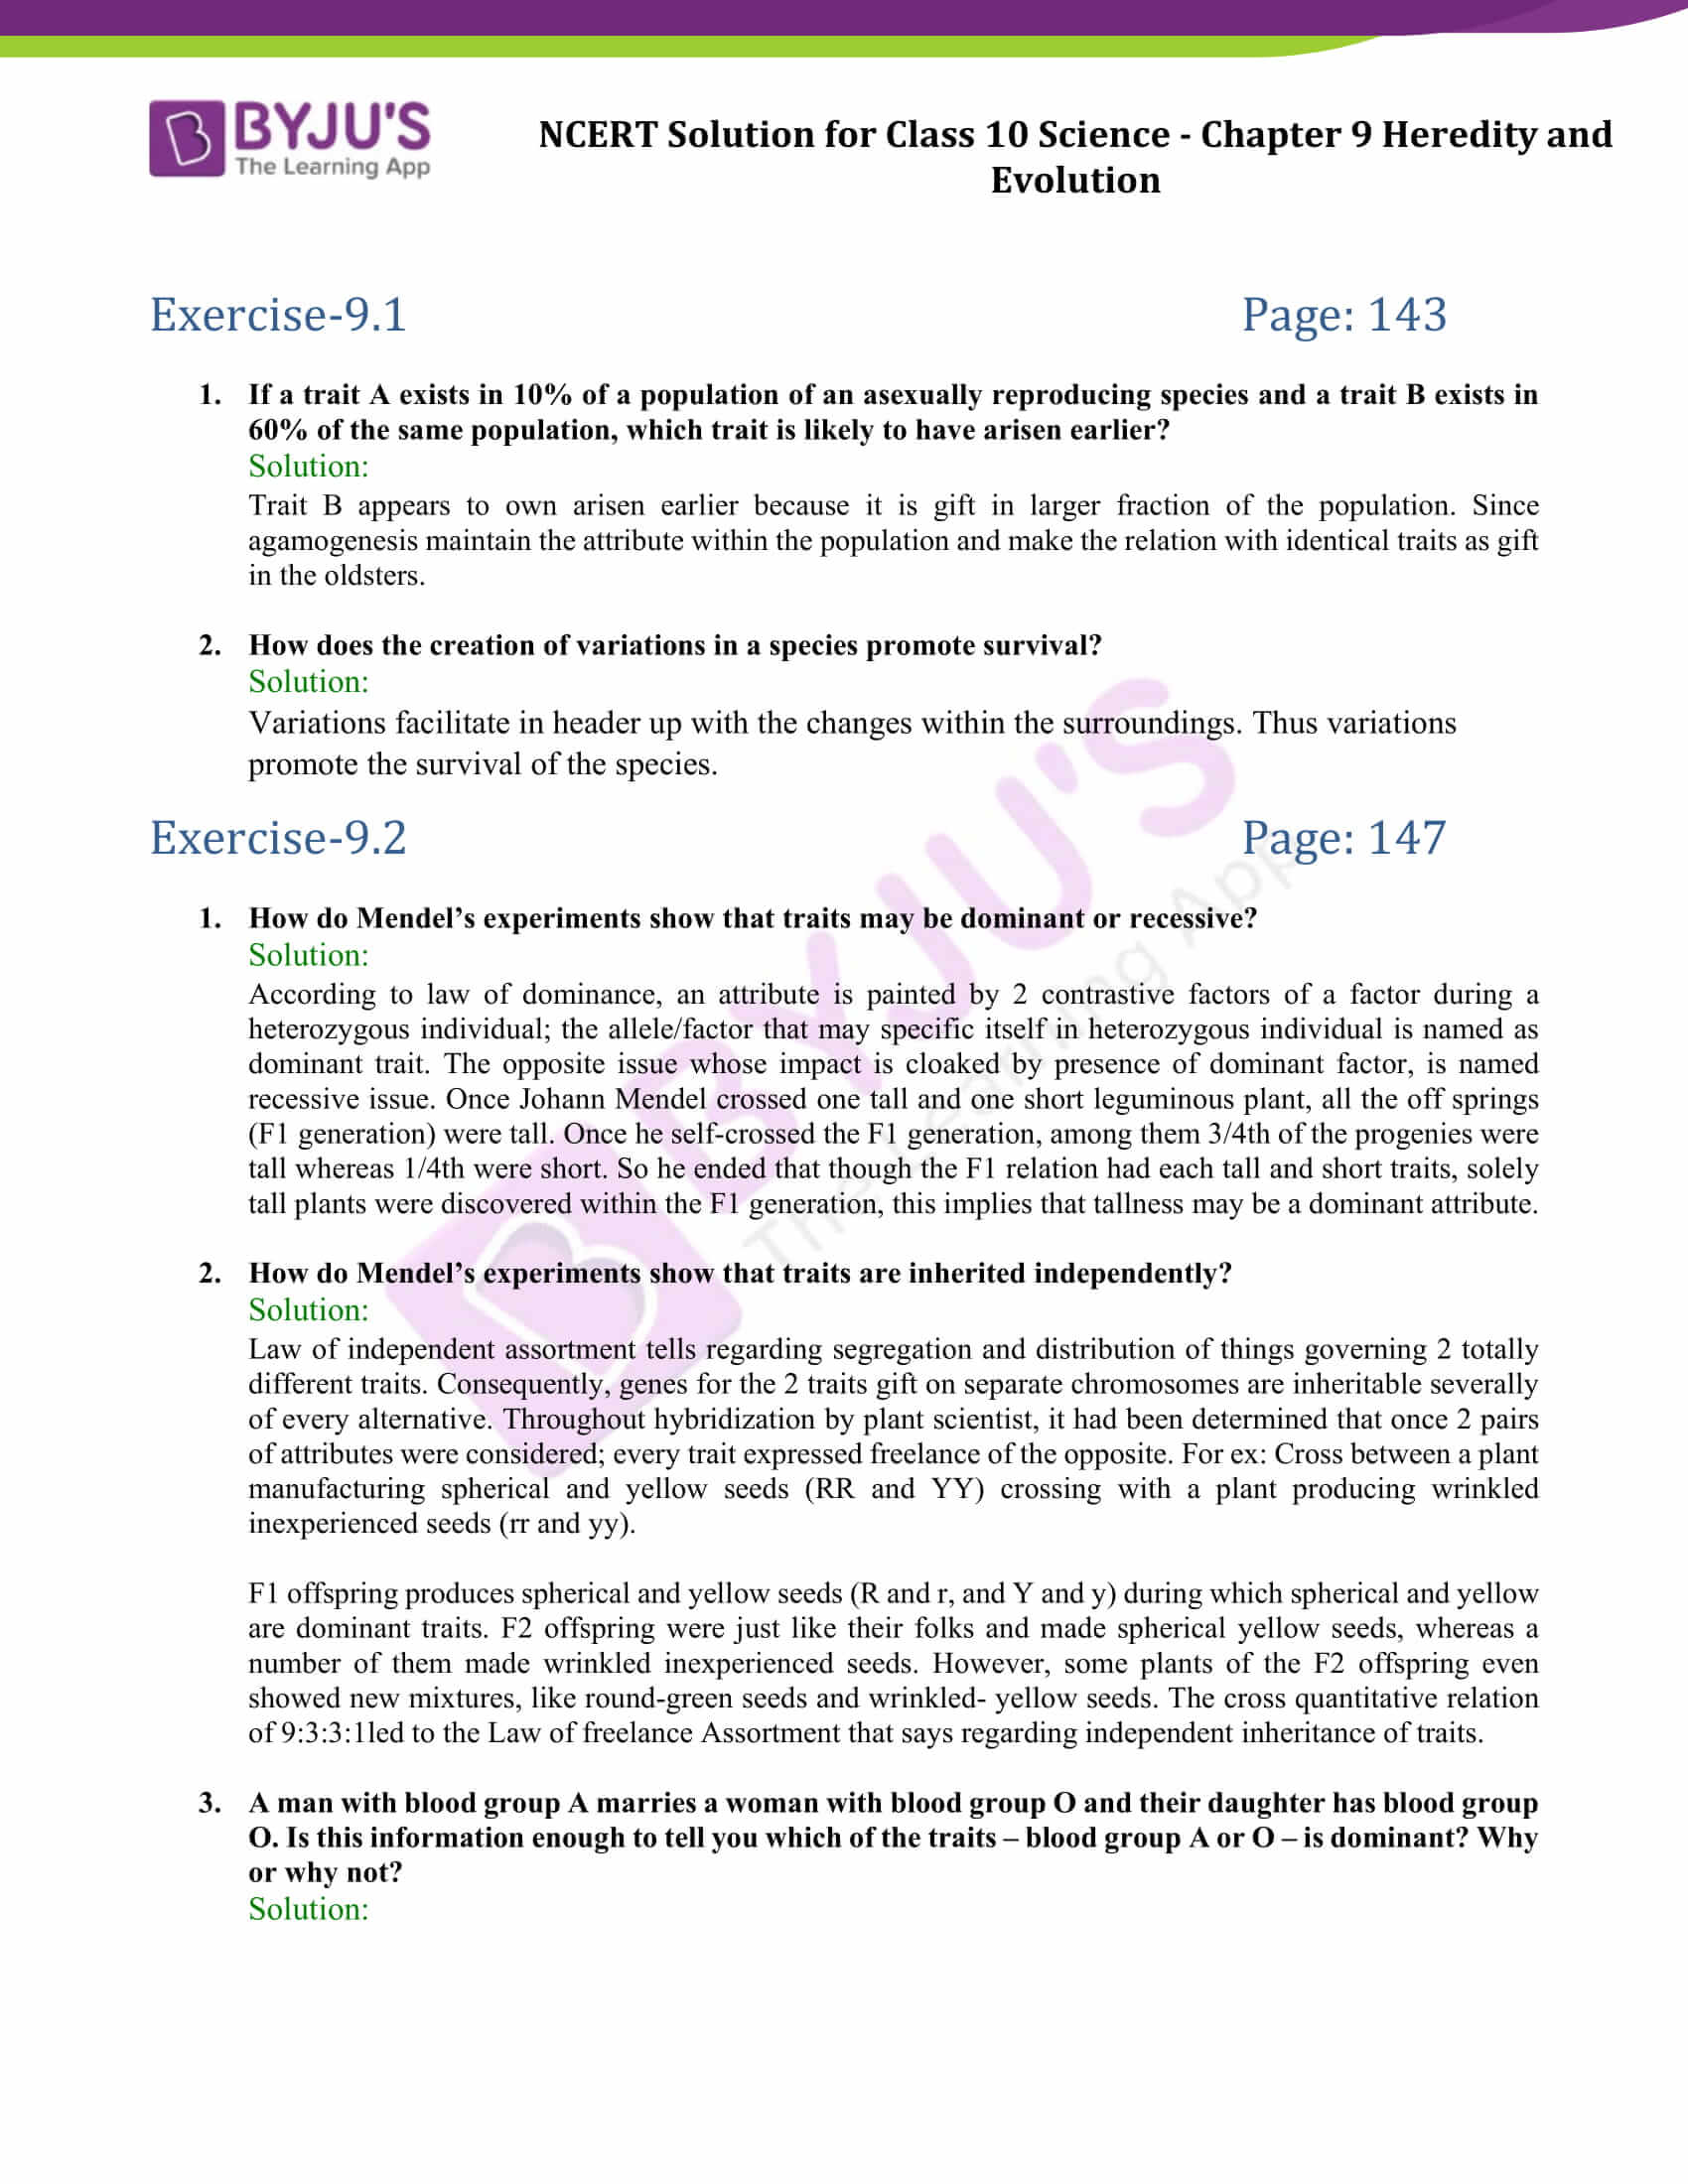 NCERT Solutions Class 10 Science Chapter 9 Heredity and